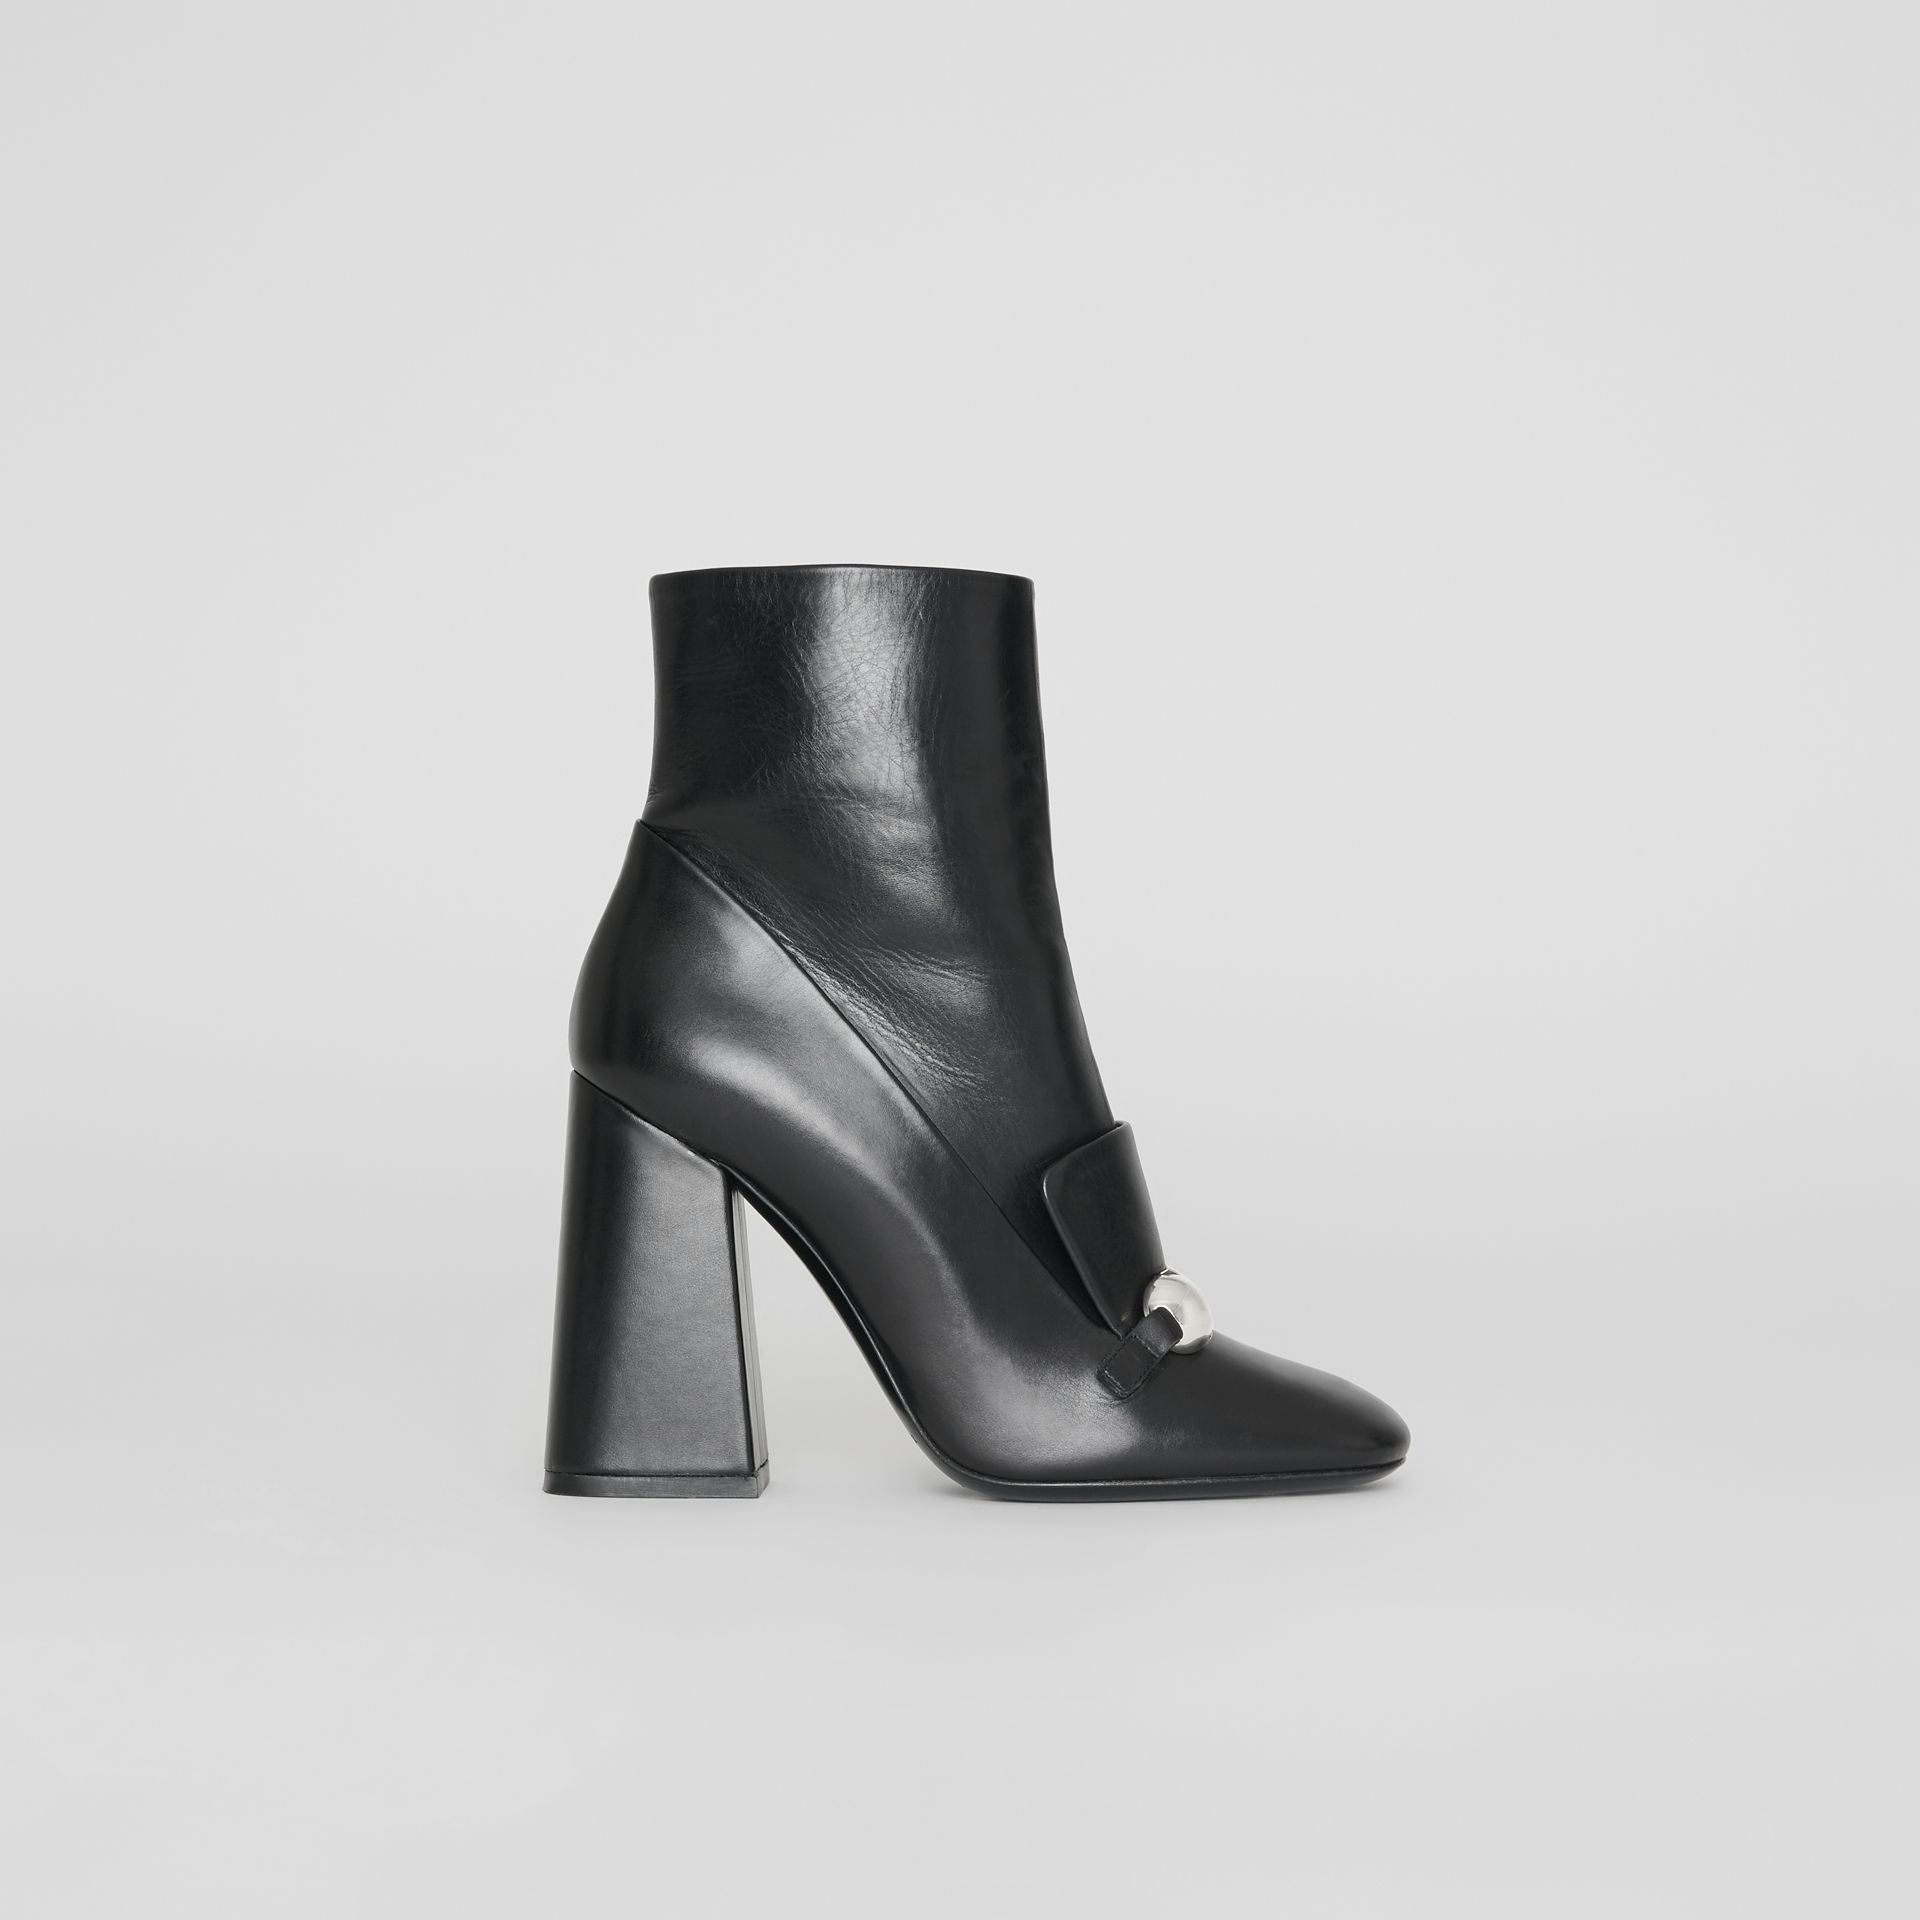 Bottines en cuir avec bride cloutée (Noir) - Femme | Burberry Canada - photo de la galerie 4